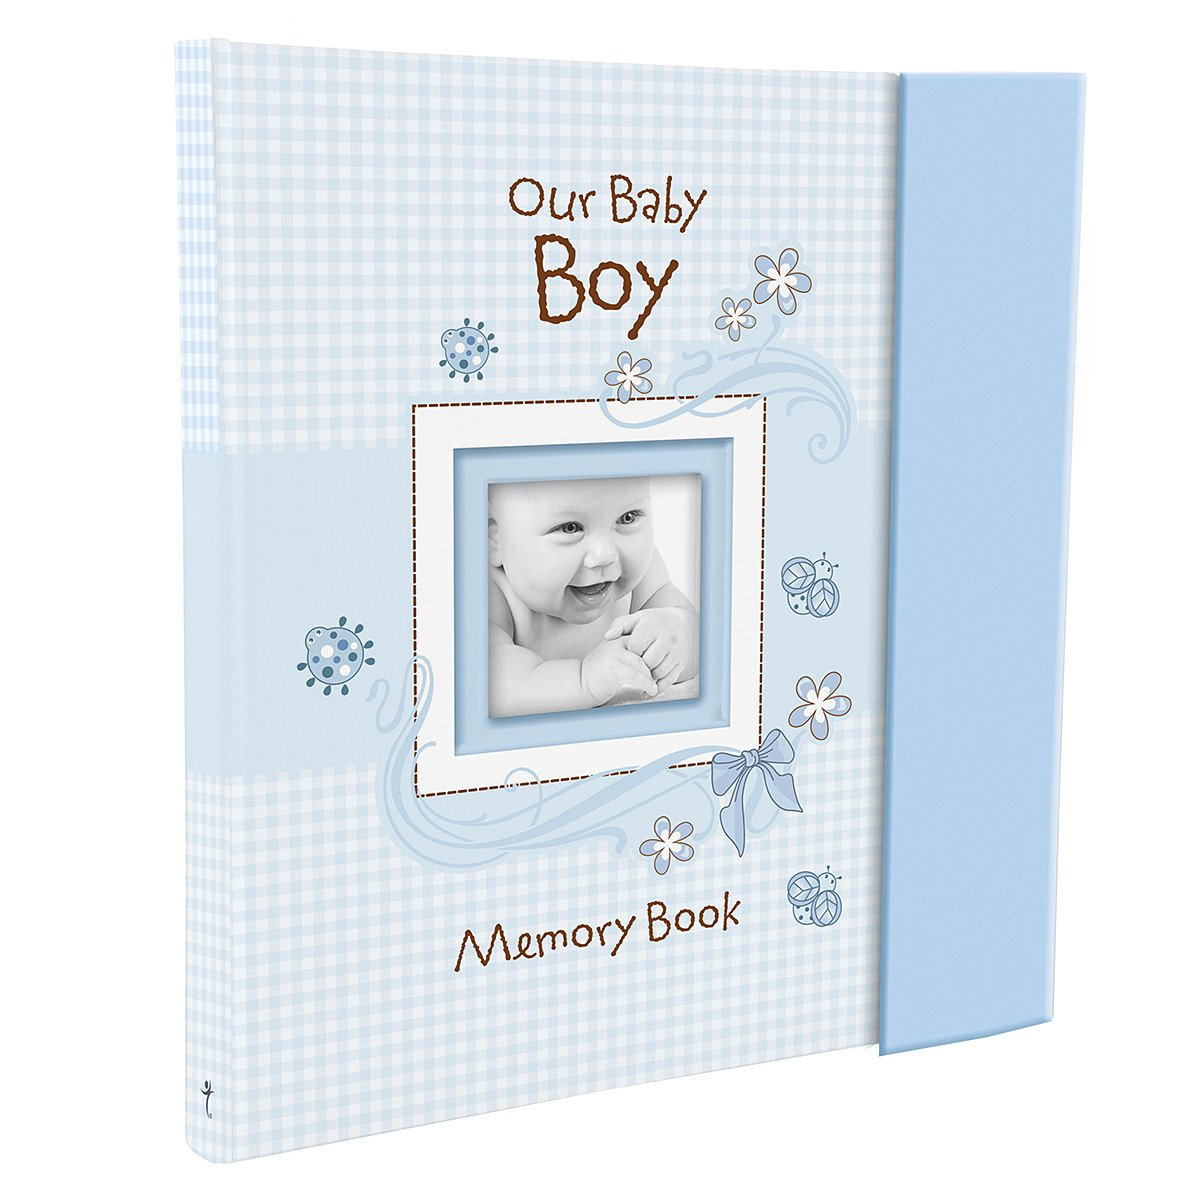 Our Baby Boy Memory Book by Christian Art Gifts